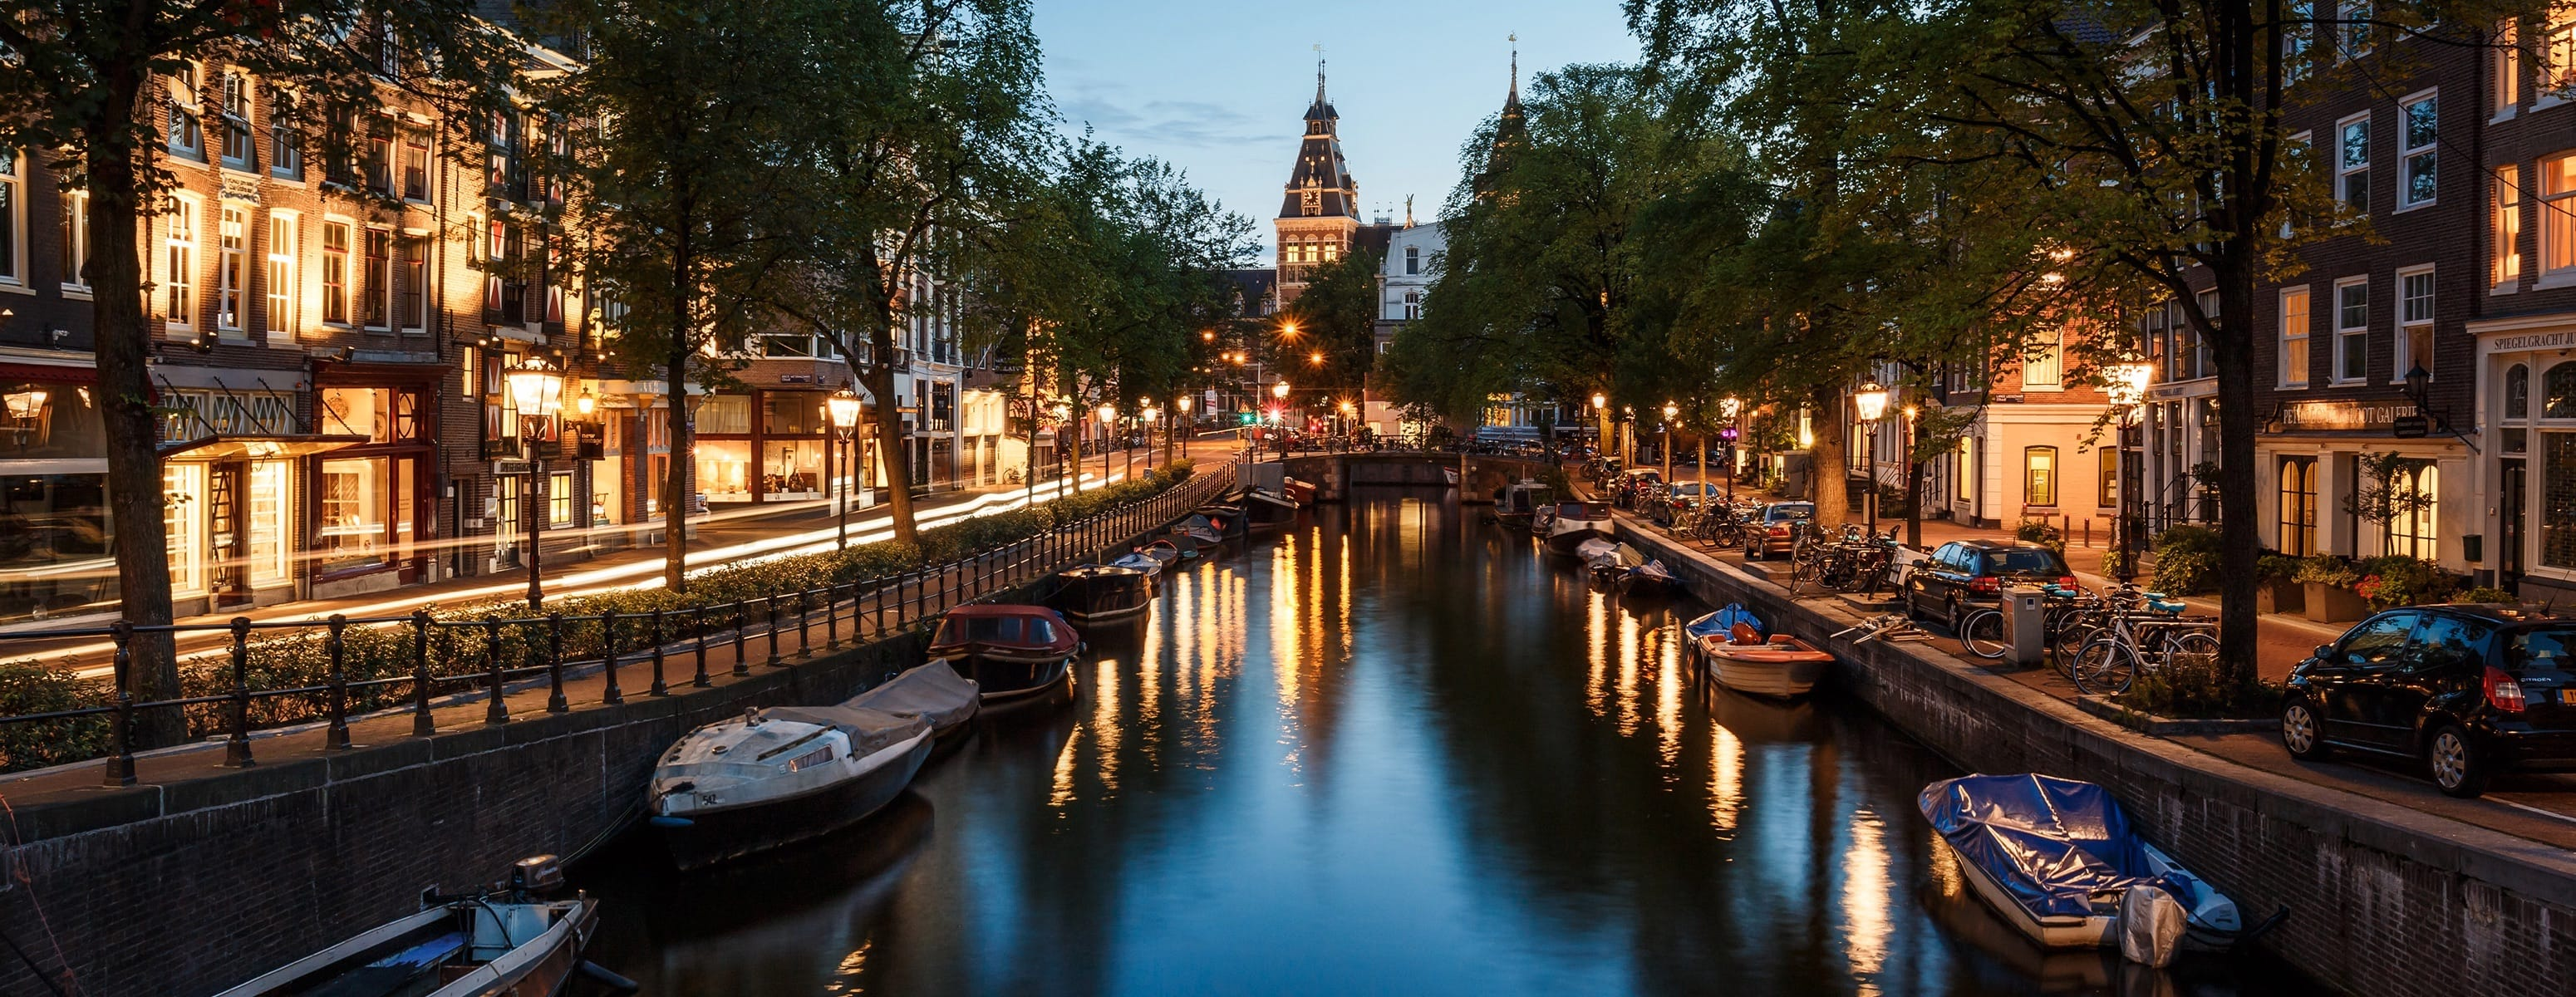 Amsterdam 2018 (with Photos): Top 20 Places to Stay in Amsterdam ...